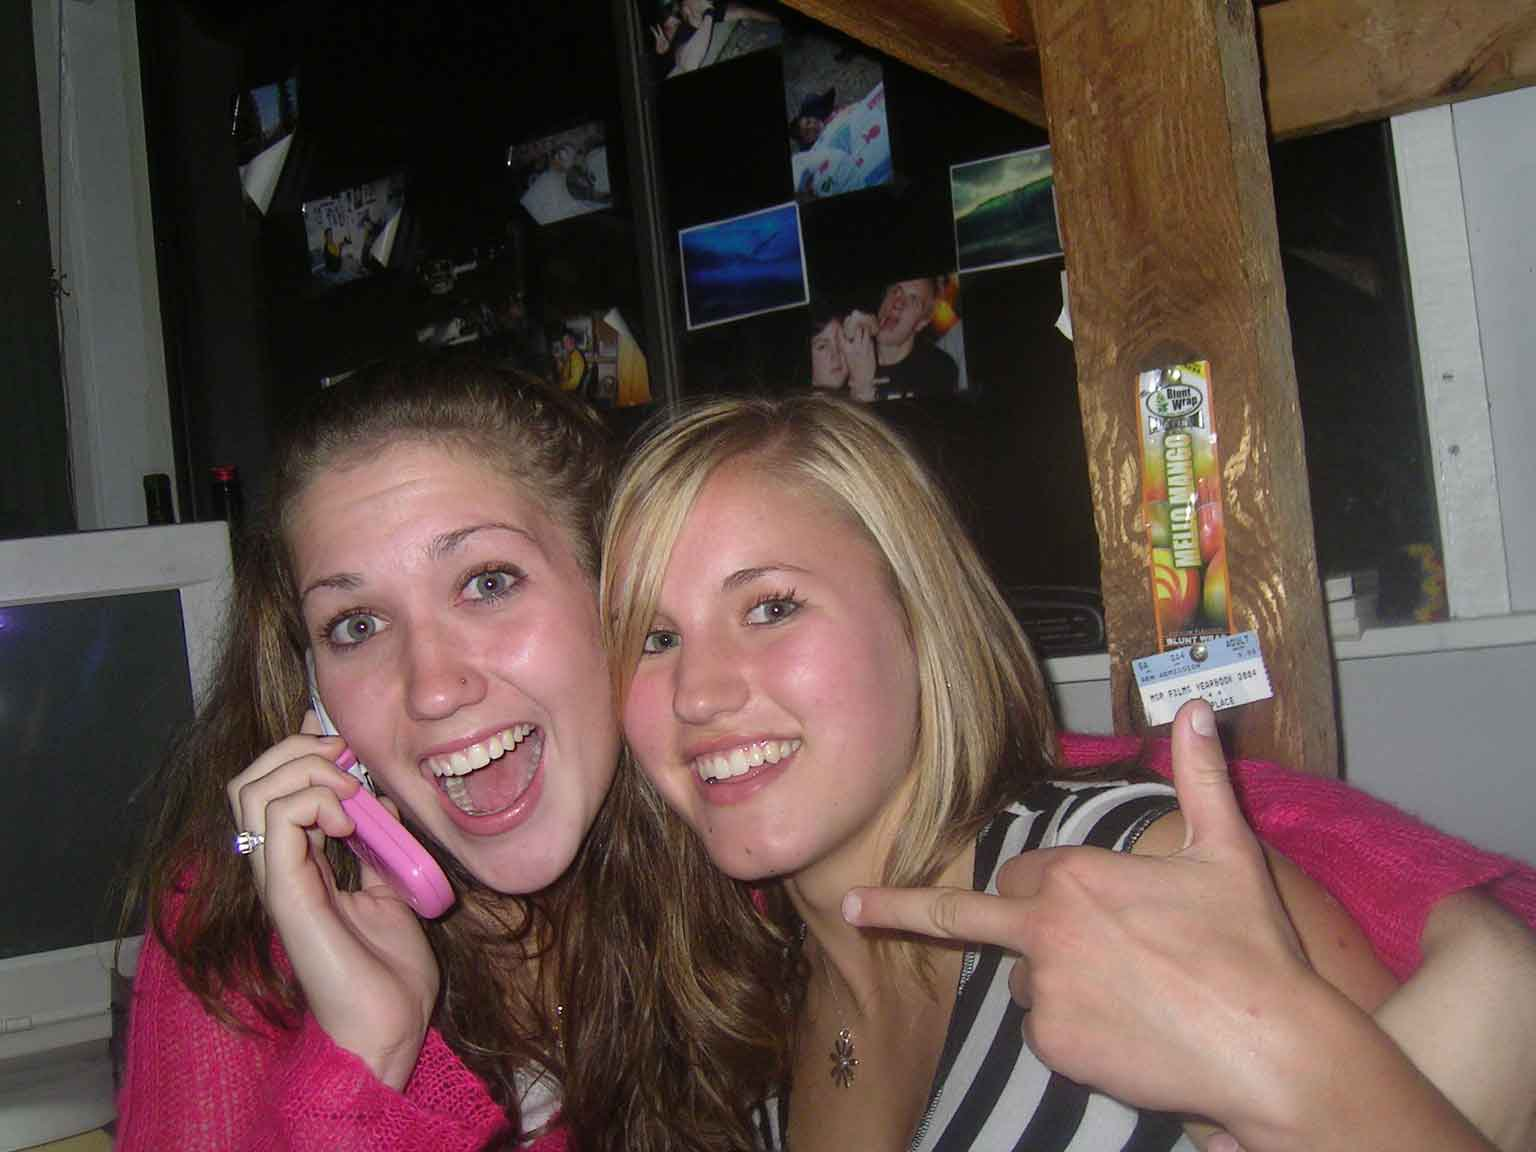 barbie phone... no comment